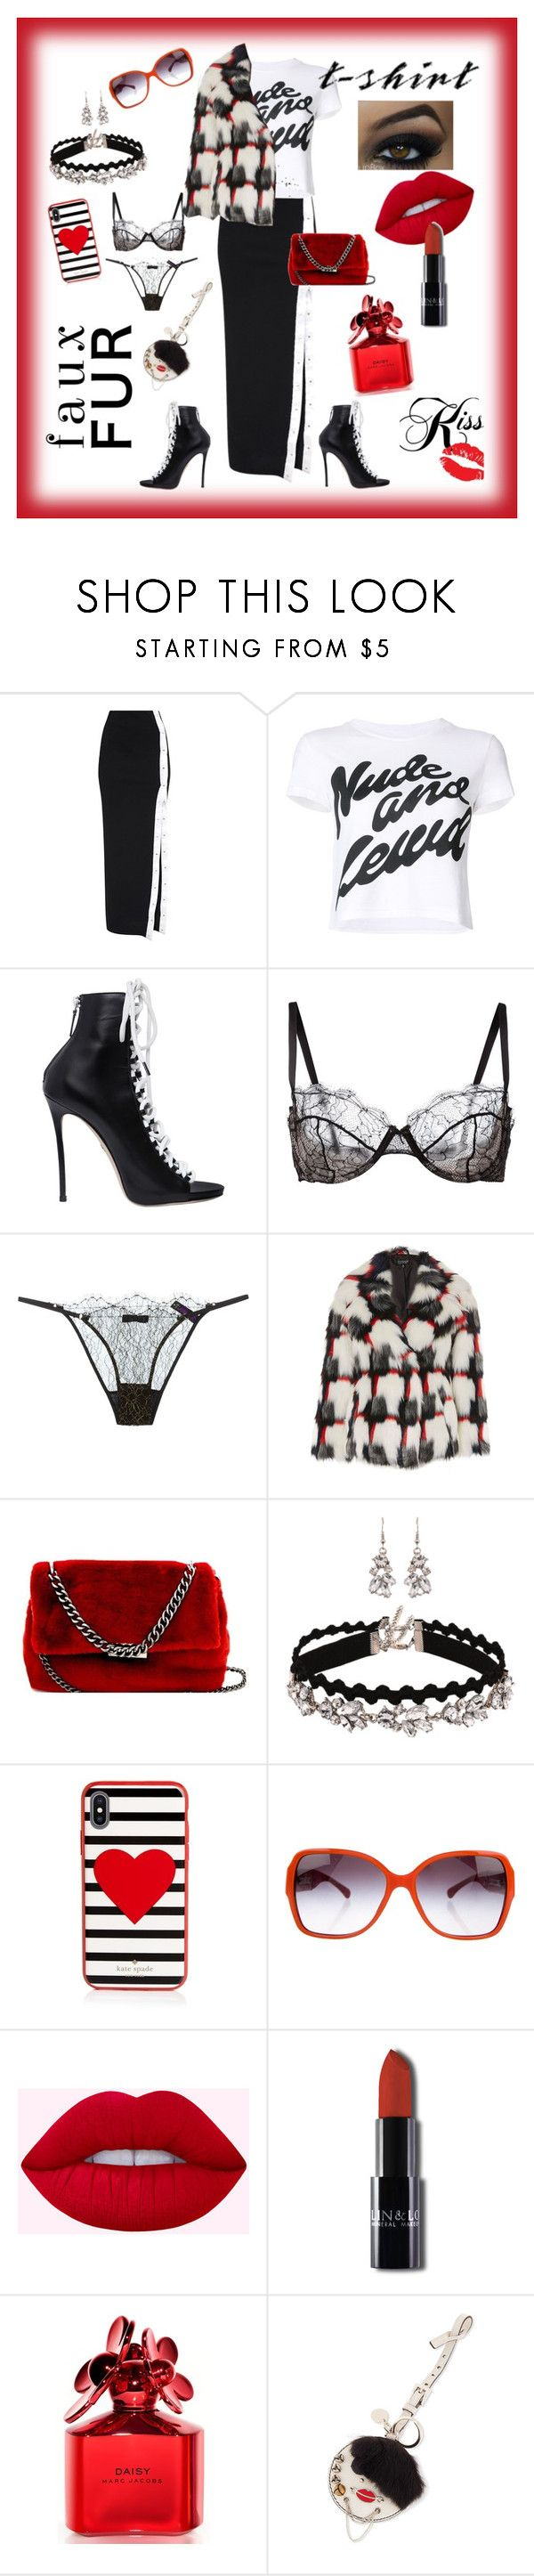 """Untitled #1427"" by gigiglow ❤ liked on Polyvore featuring House of Holland, Dsquared2, Fleur du Mal, Maison Close, Topshop, Bungalow 20, Kate Spade, Chanel, Marc Jacobs and Prada"